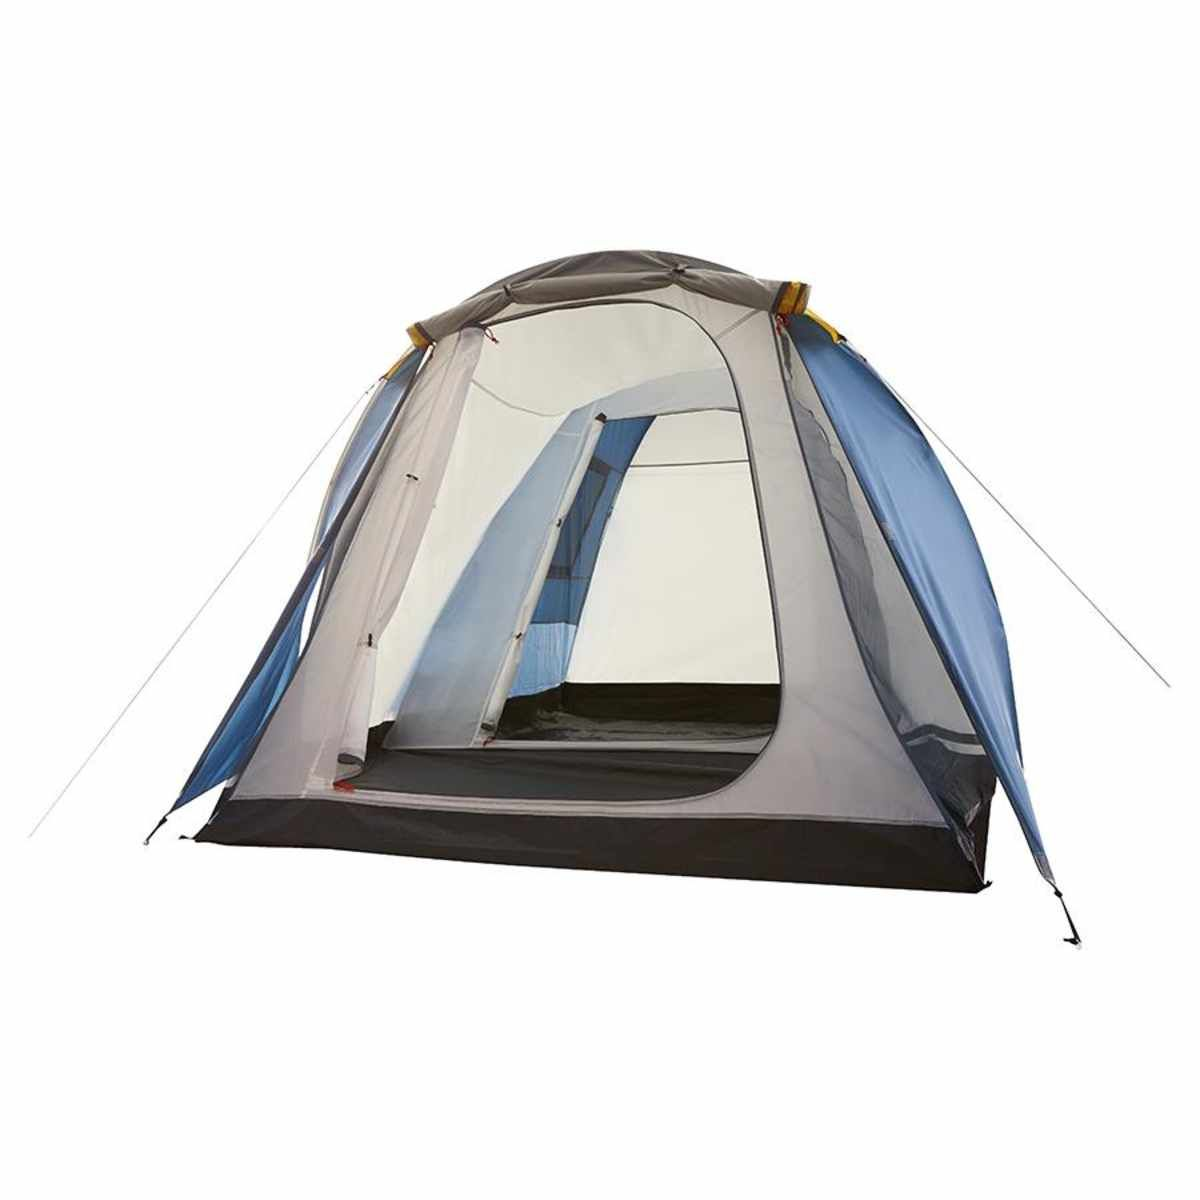 8 Person 2 Room Tent Active Co